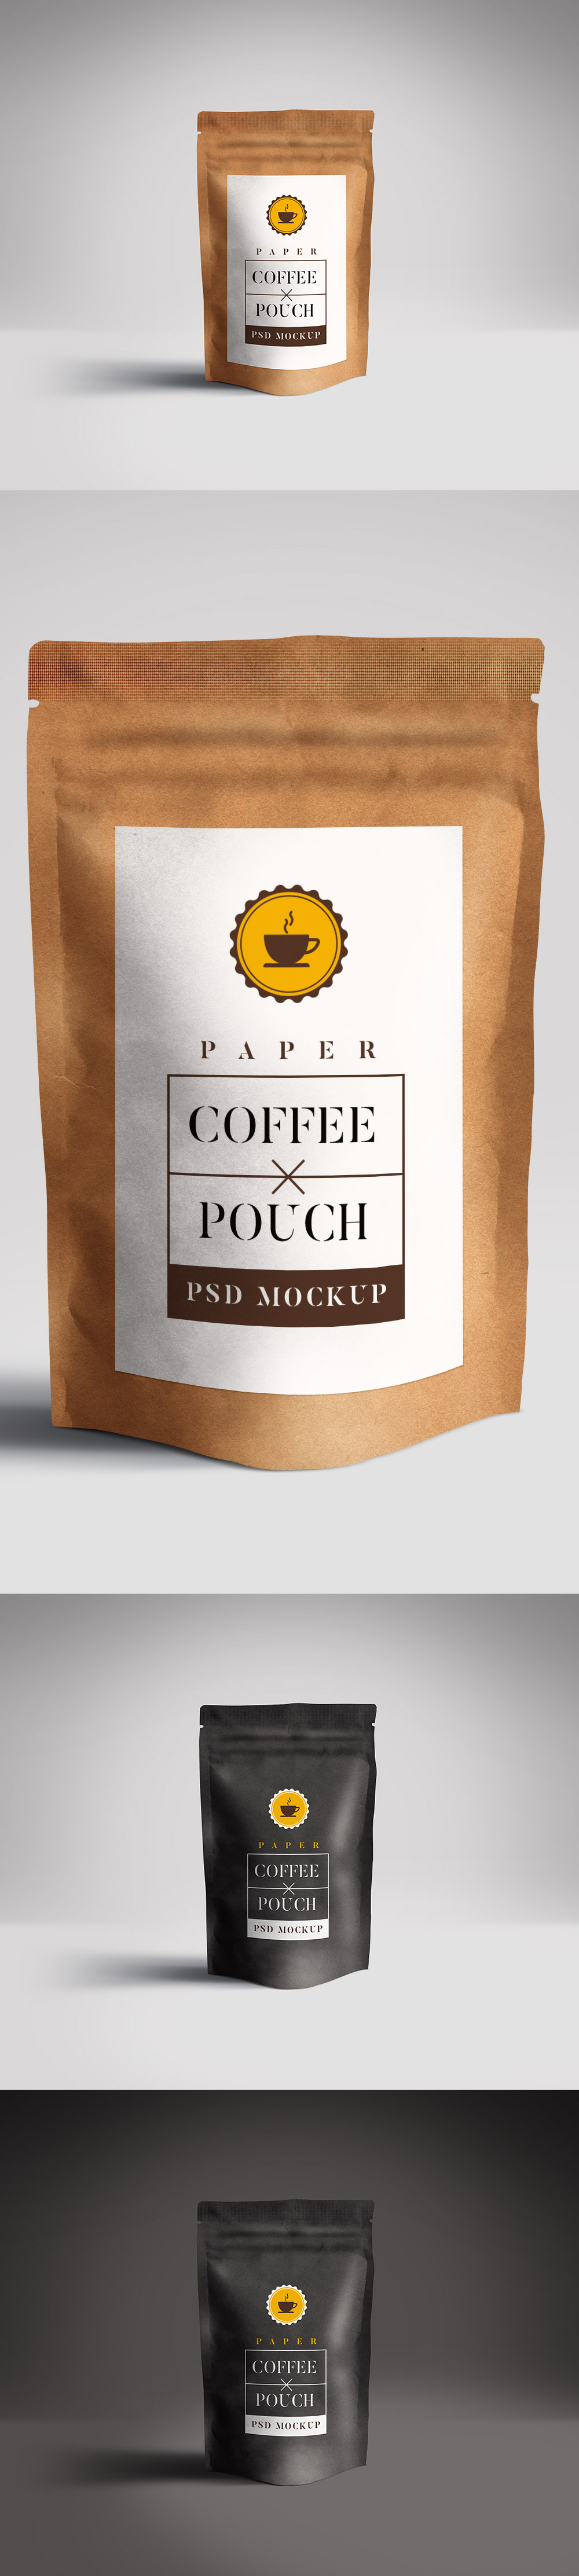 Paper Pouch Packaging Mockup PSD